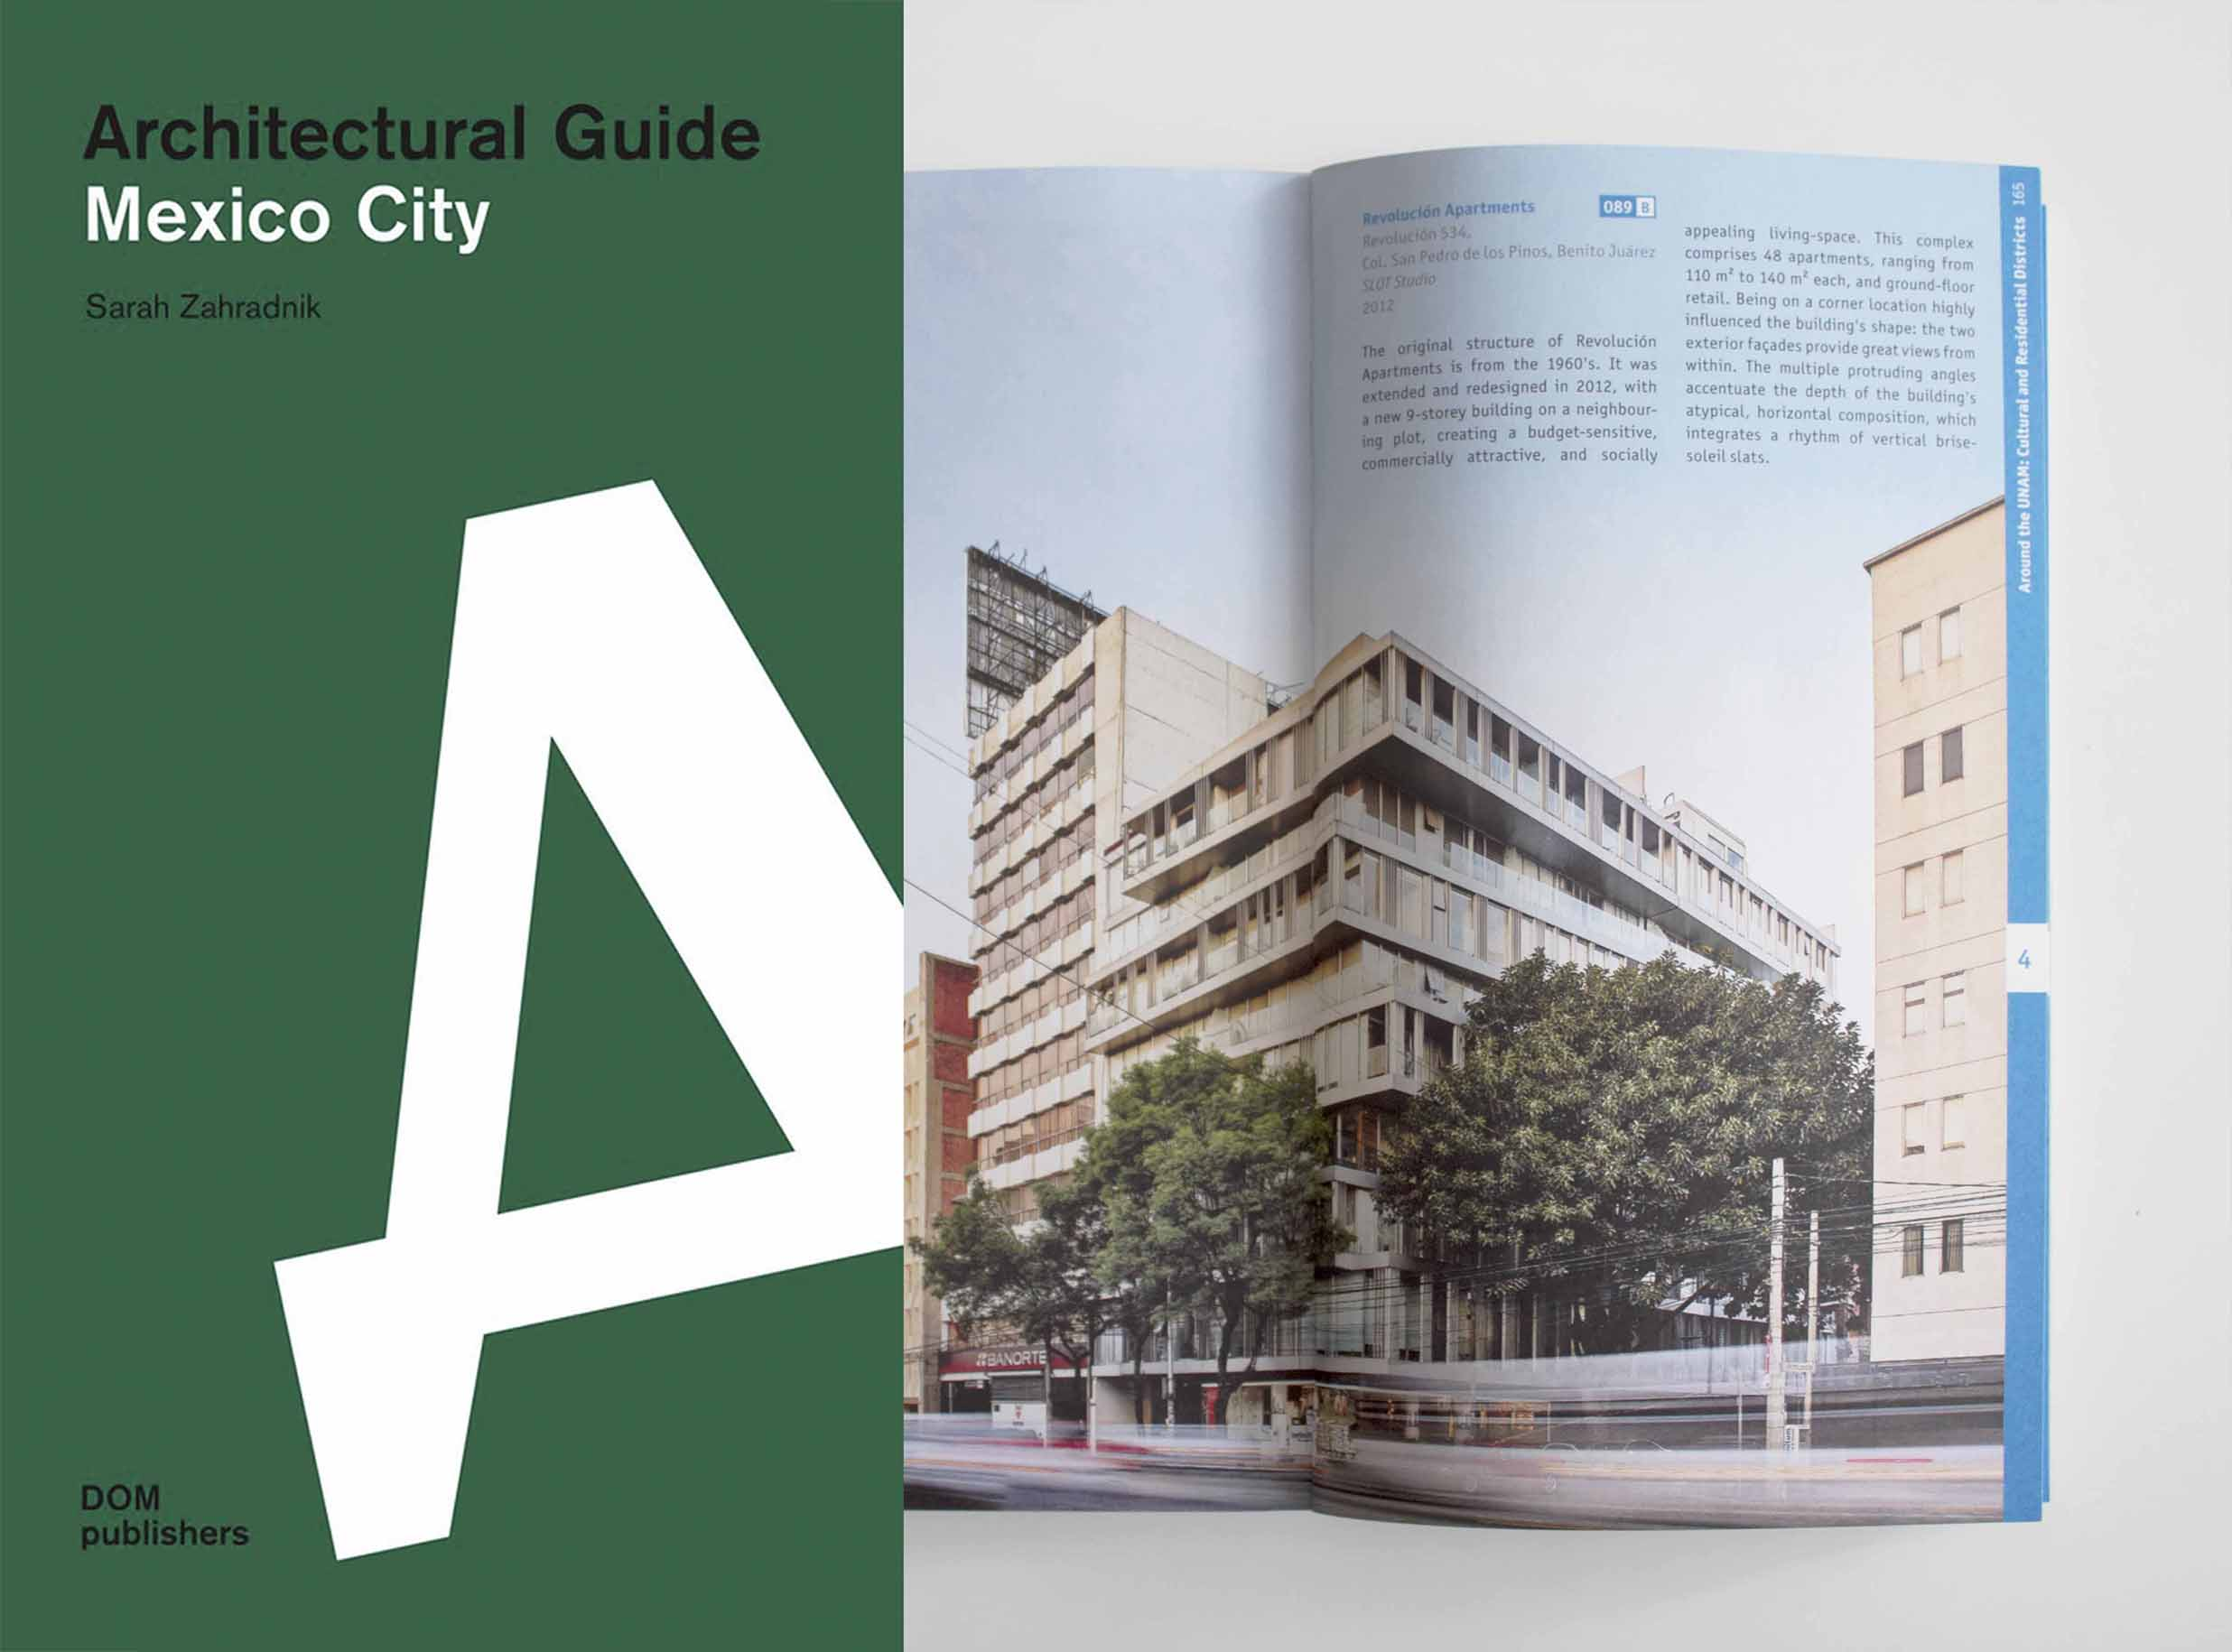 REVOLUCIÓN APARTMENTS FOUNDED IN ARCHITECTURAL GUIDE : SLOT STUDIO